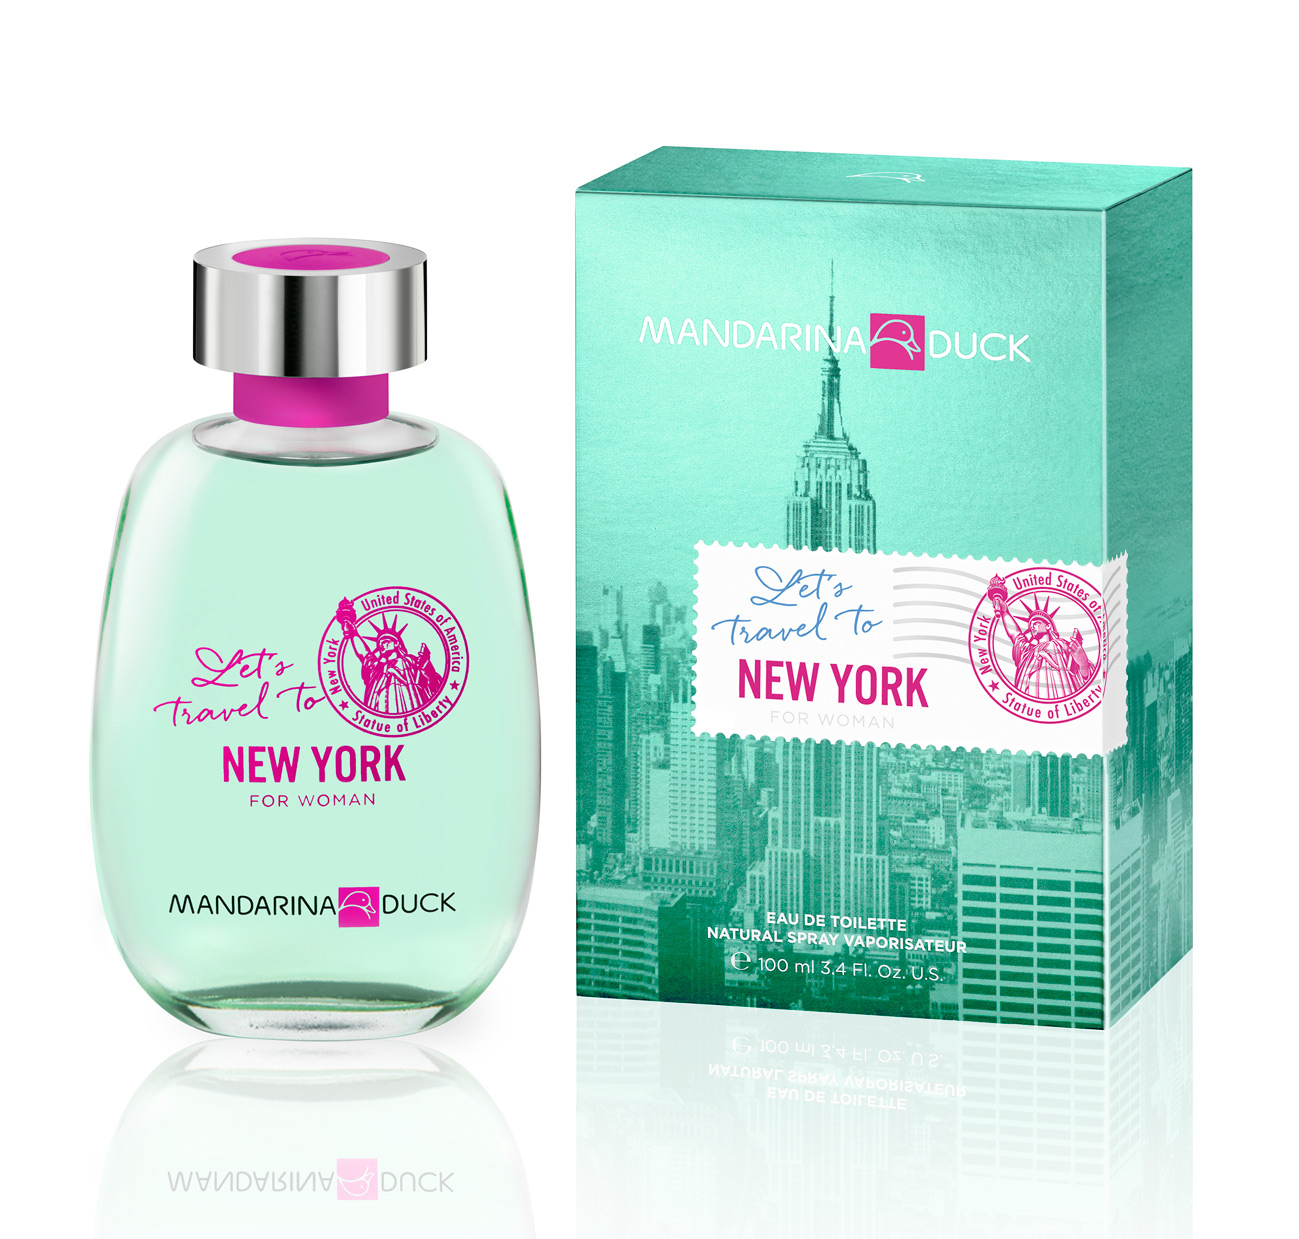 Let S Travel To New York For Woman Mandarina Duck Perfume